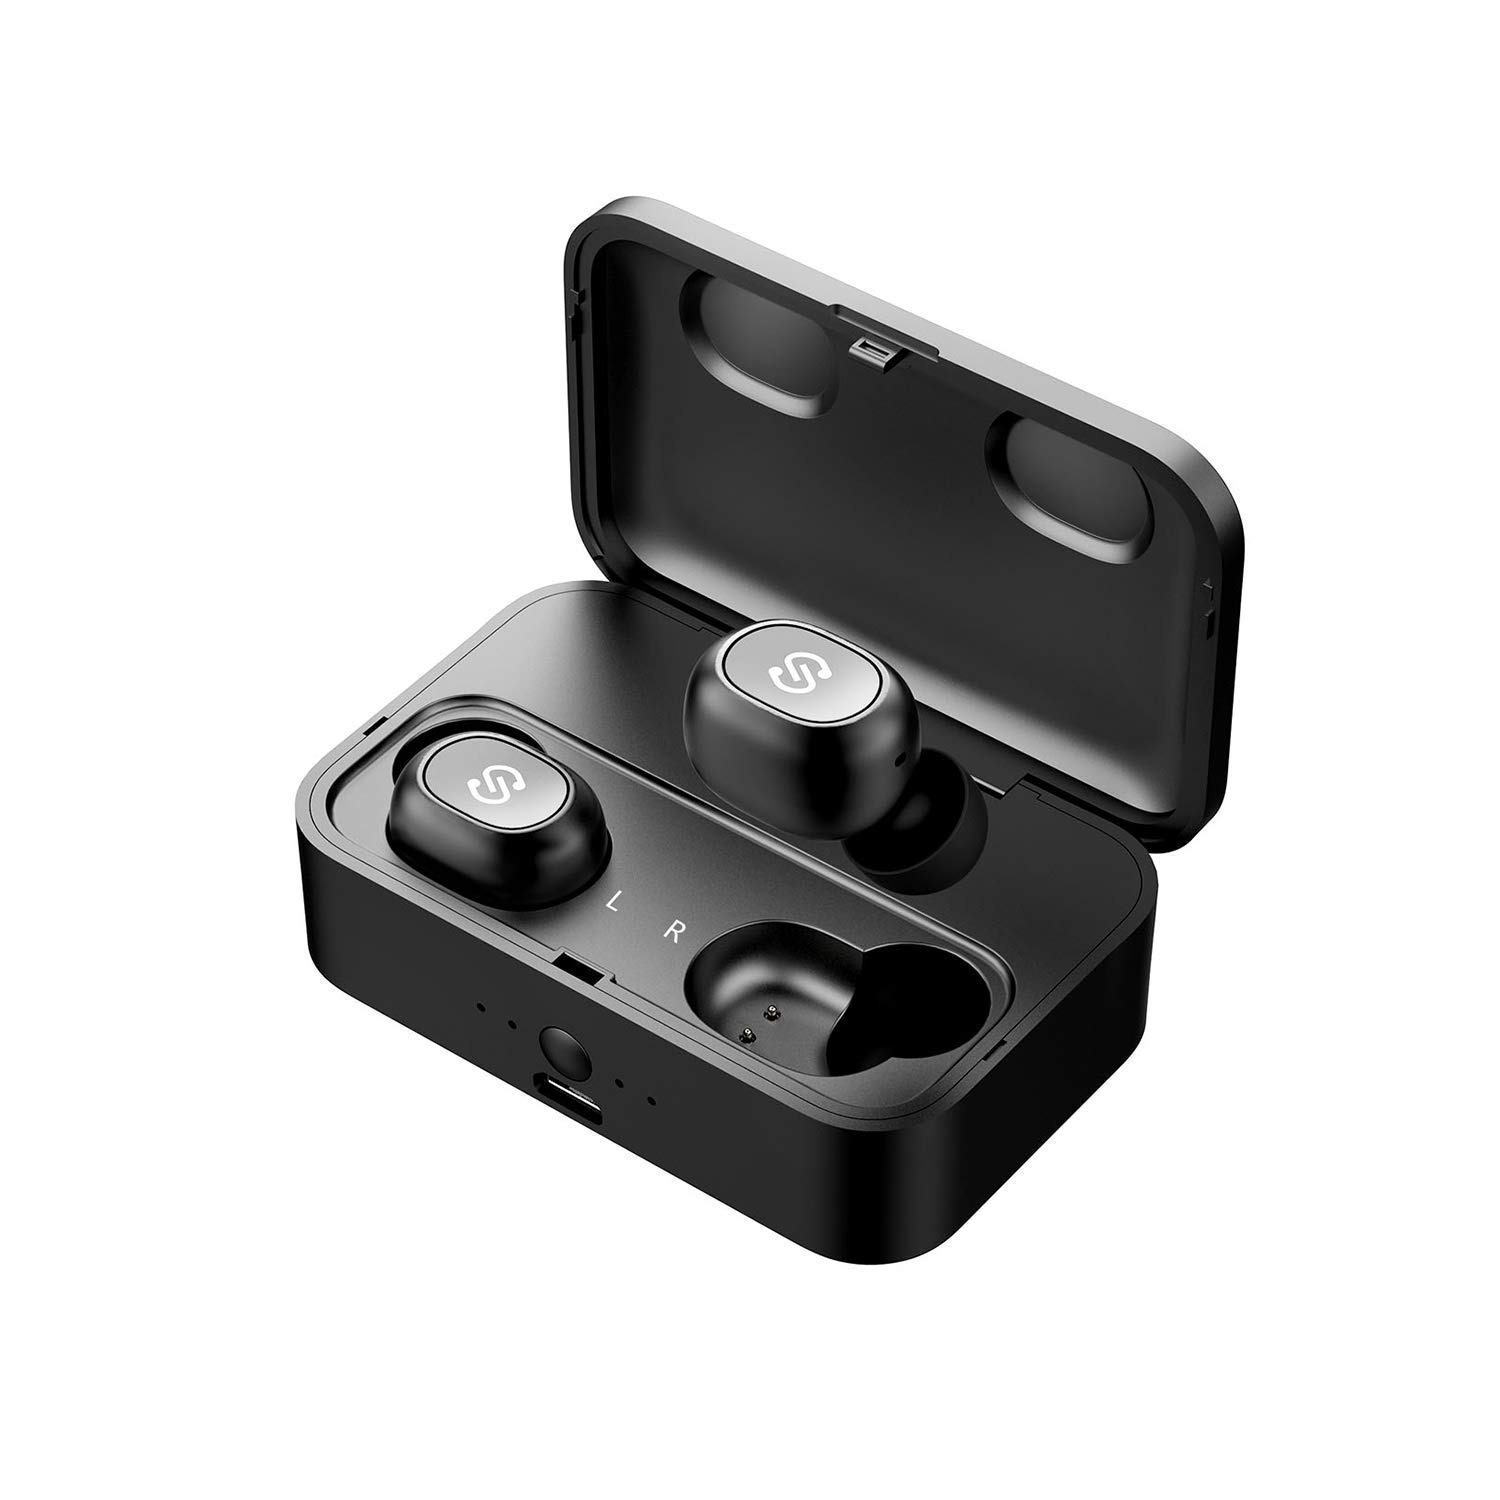 SoundPEATS True Wireless Bluetooth Earbuds in-Ear Stereo TWS Bluetooth Headphones Wireless Earphones (Bluetooth 5.0, 2600mAh Charging Case, 55 Hours Playtime, Built-in Mic)